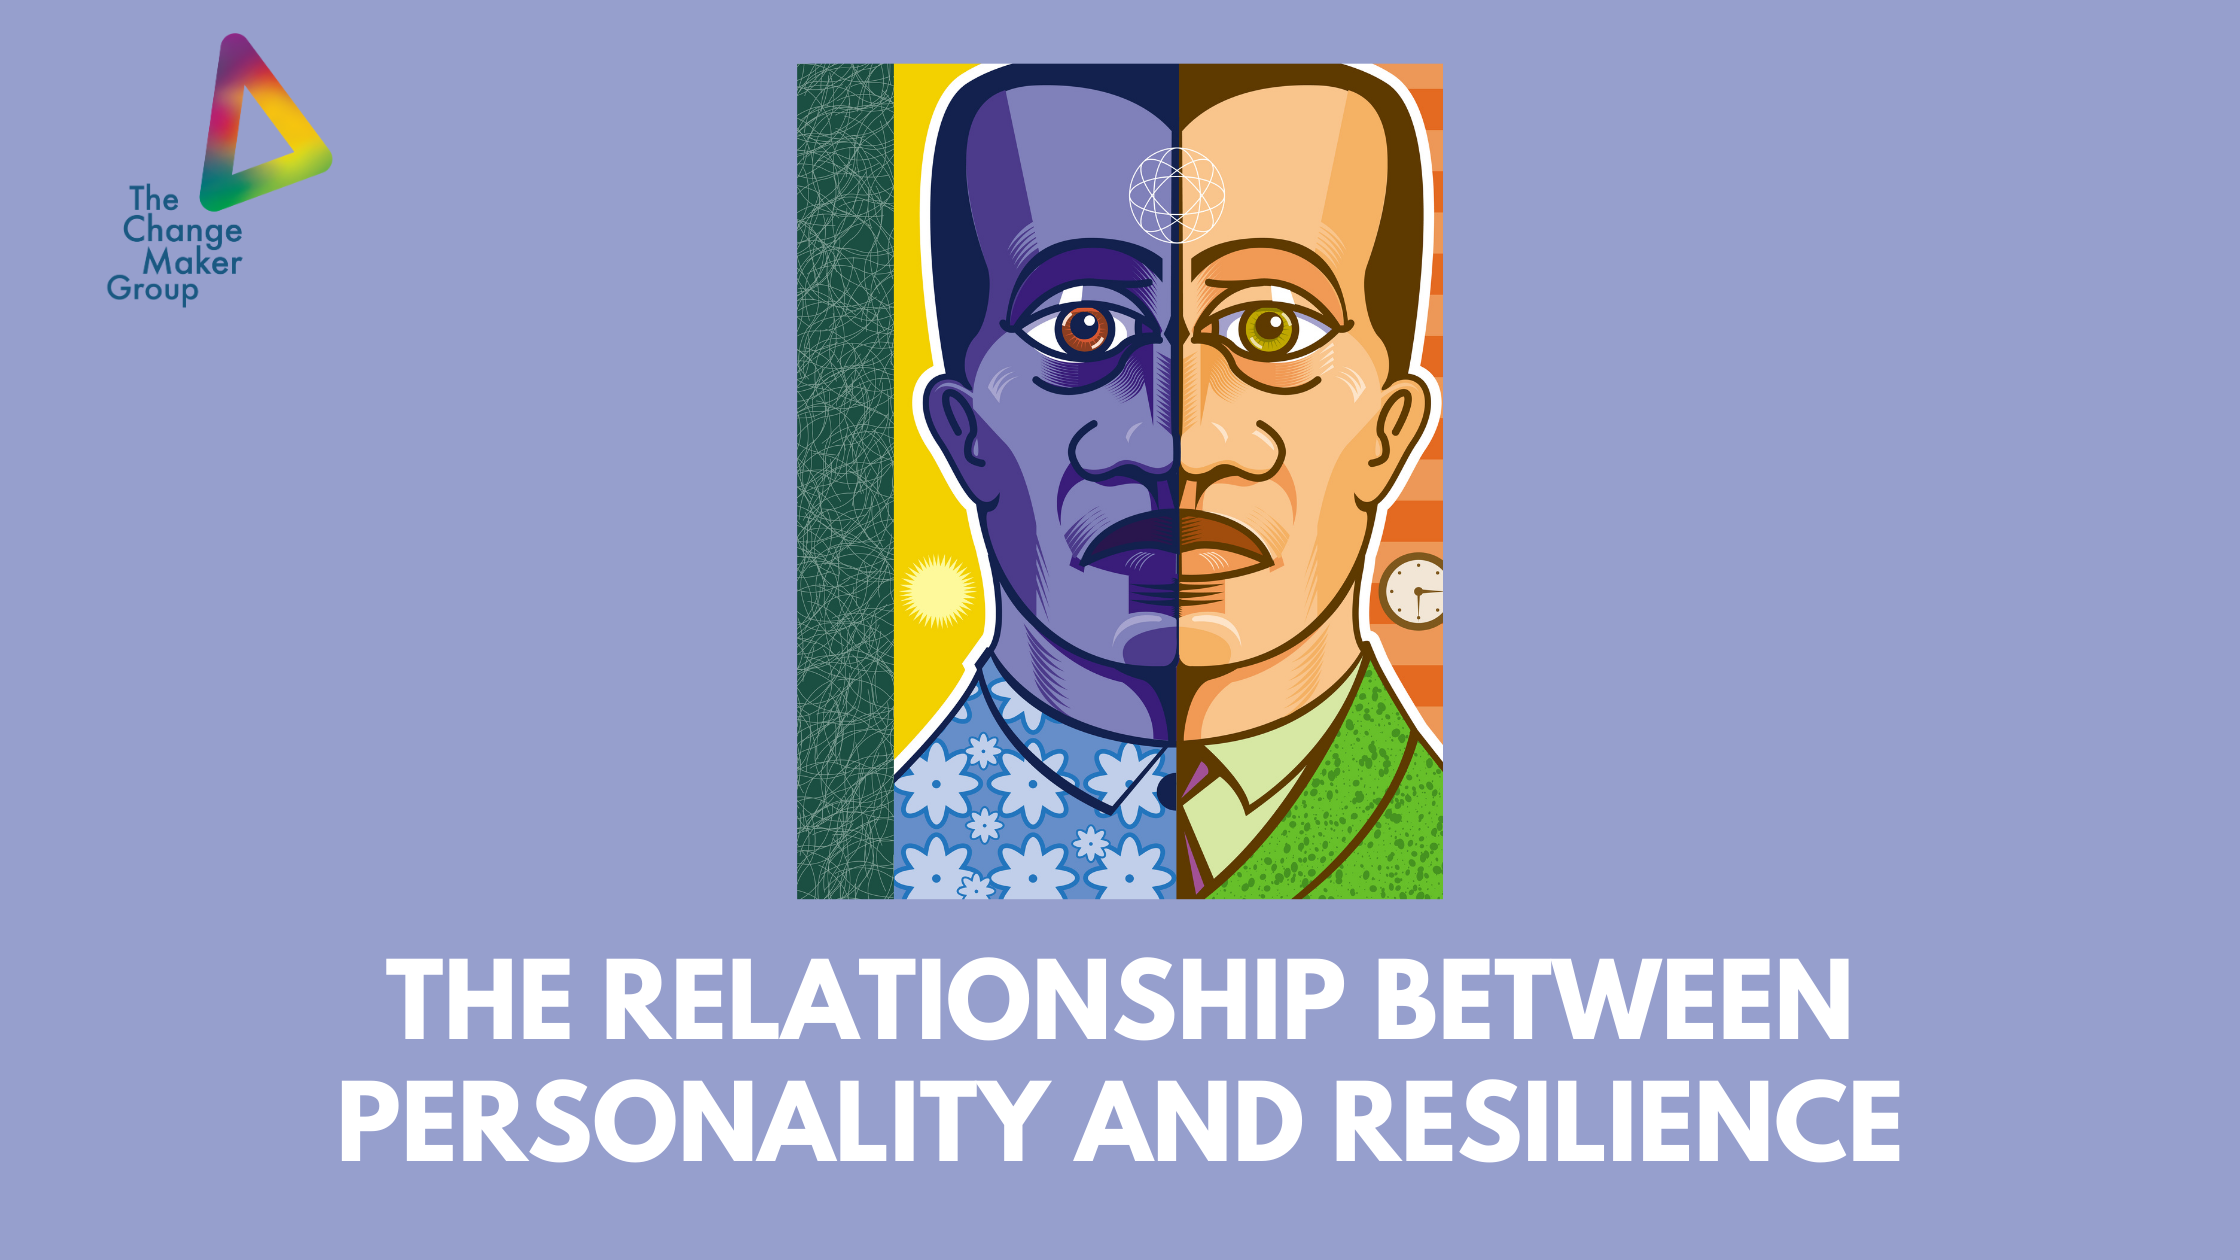 The Relationship Between Personality and Resilience